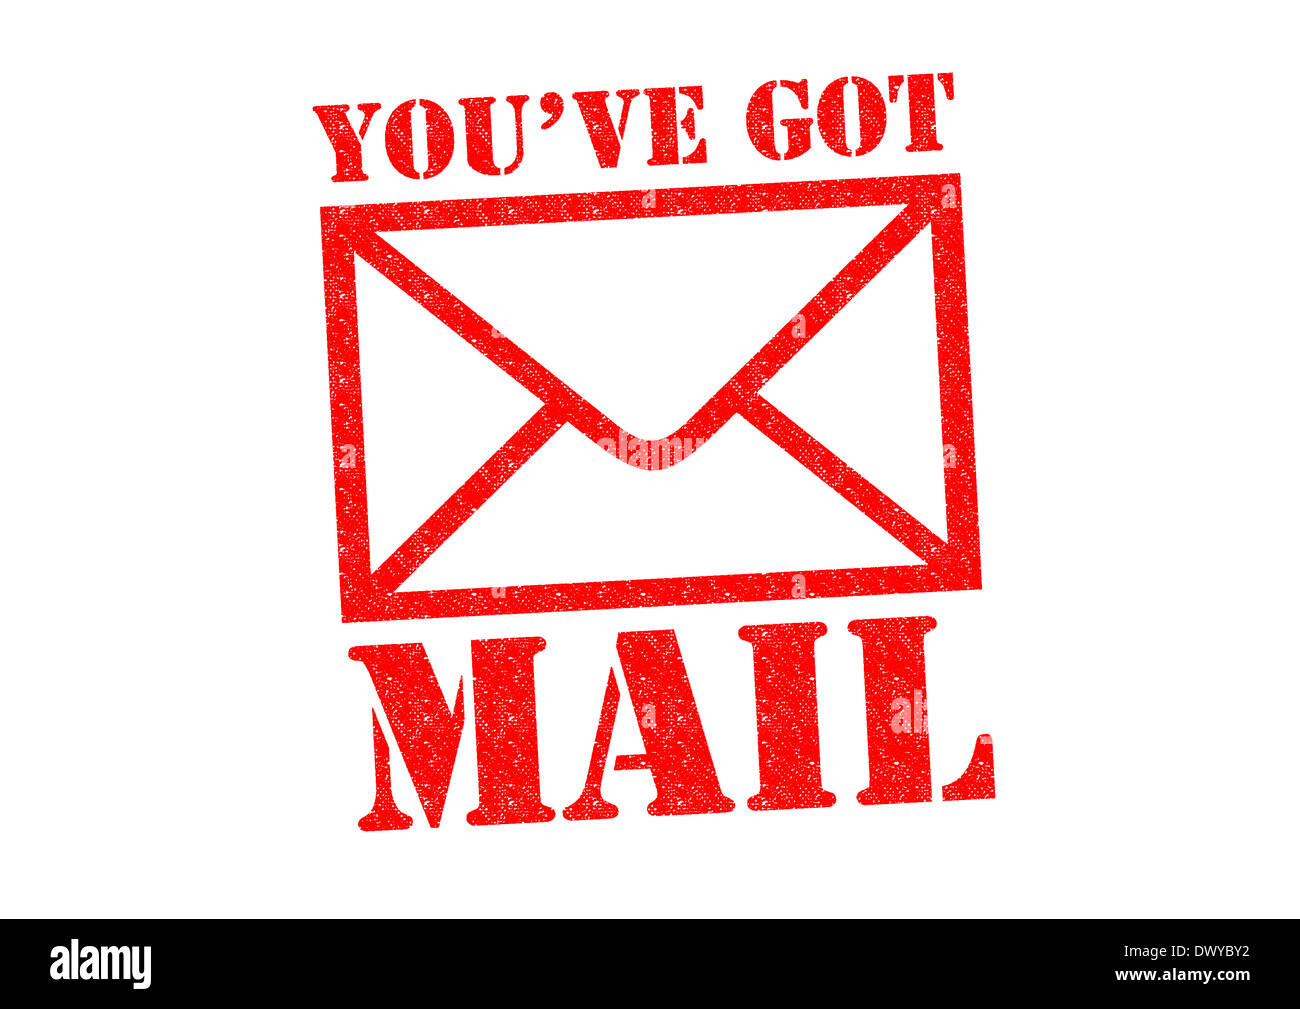 Youve Got Mail High Resolution Stock Photography And Images Alamy